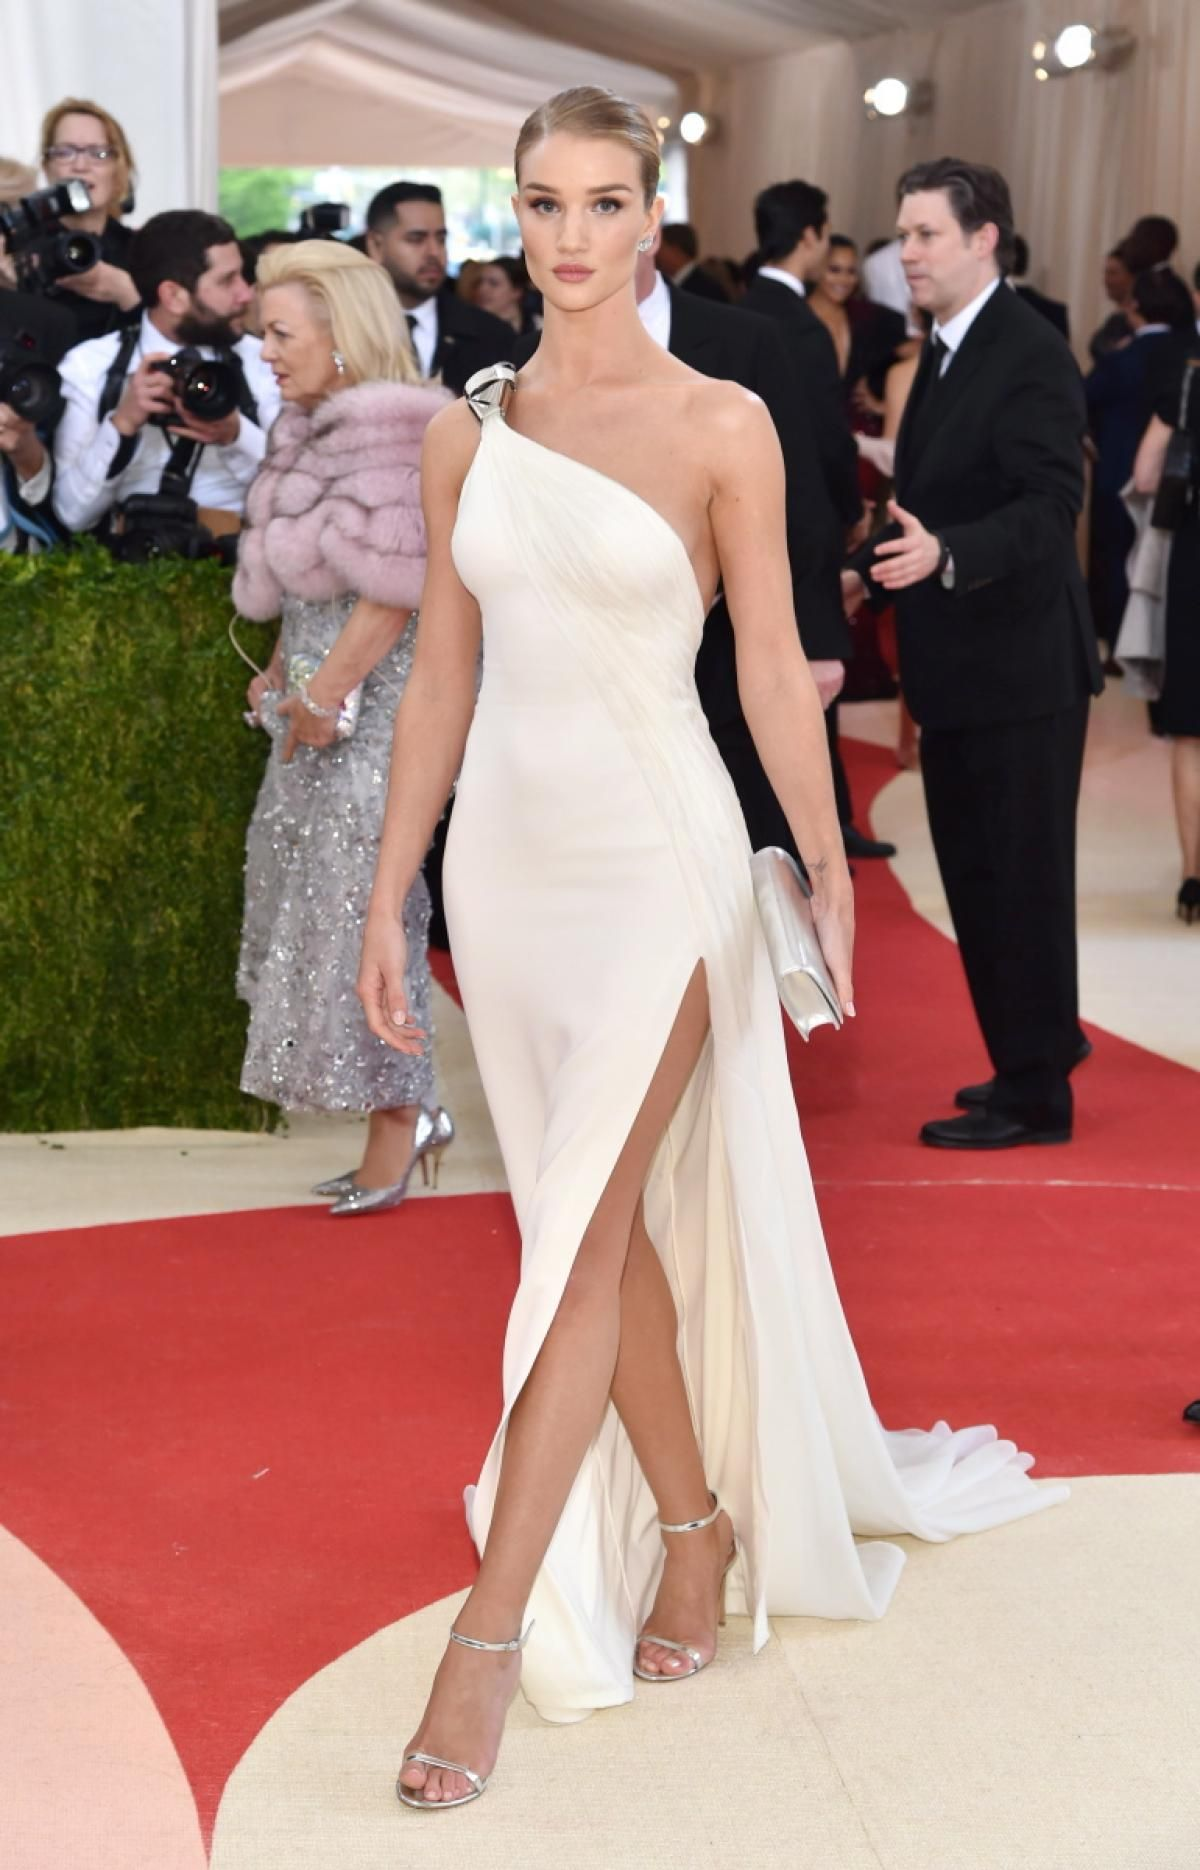 Rose Huntington-Whiteley at 2016 Met Gala in white one shoulder Grecian  Goddess gown 5dec057cc6da